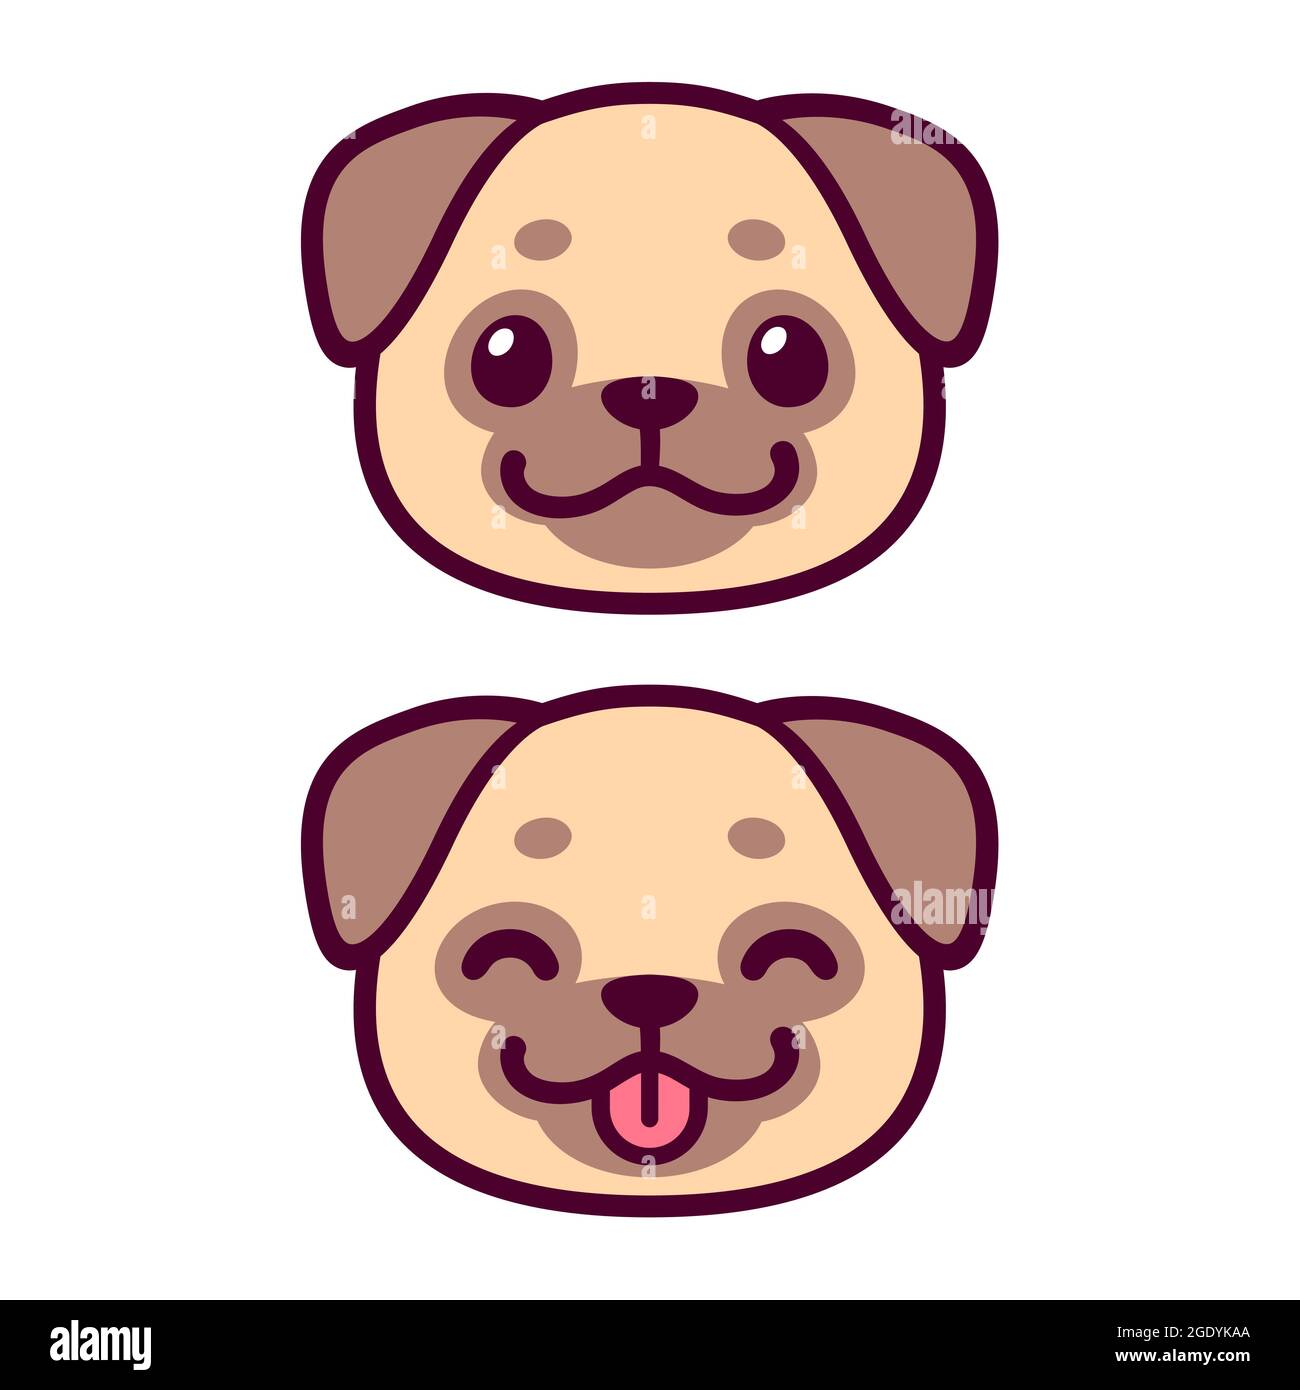 Cute cartoon pug face drawing. Kawaii dog portrait smiling with tongue out. Vector clip art illustration. Stock Vector